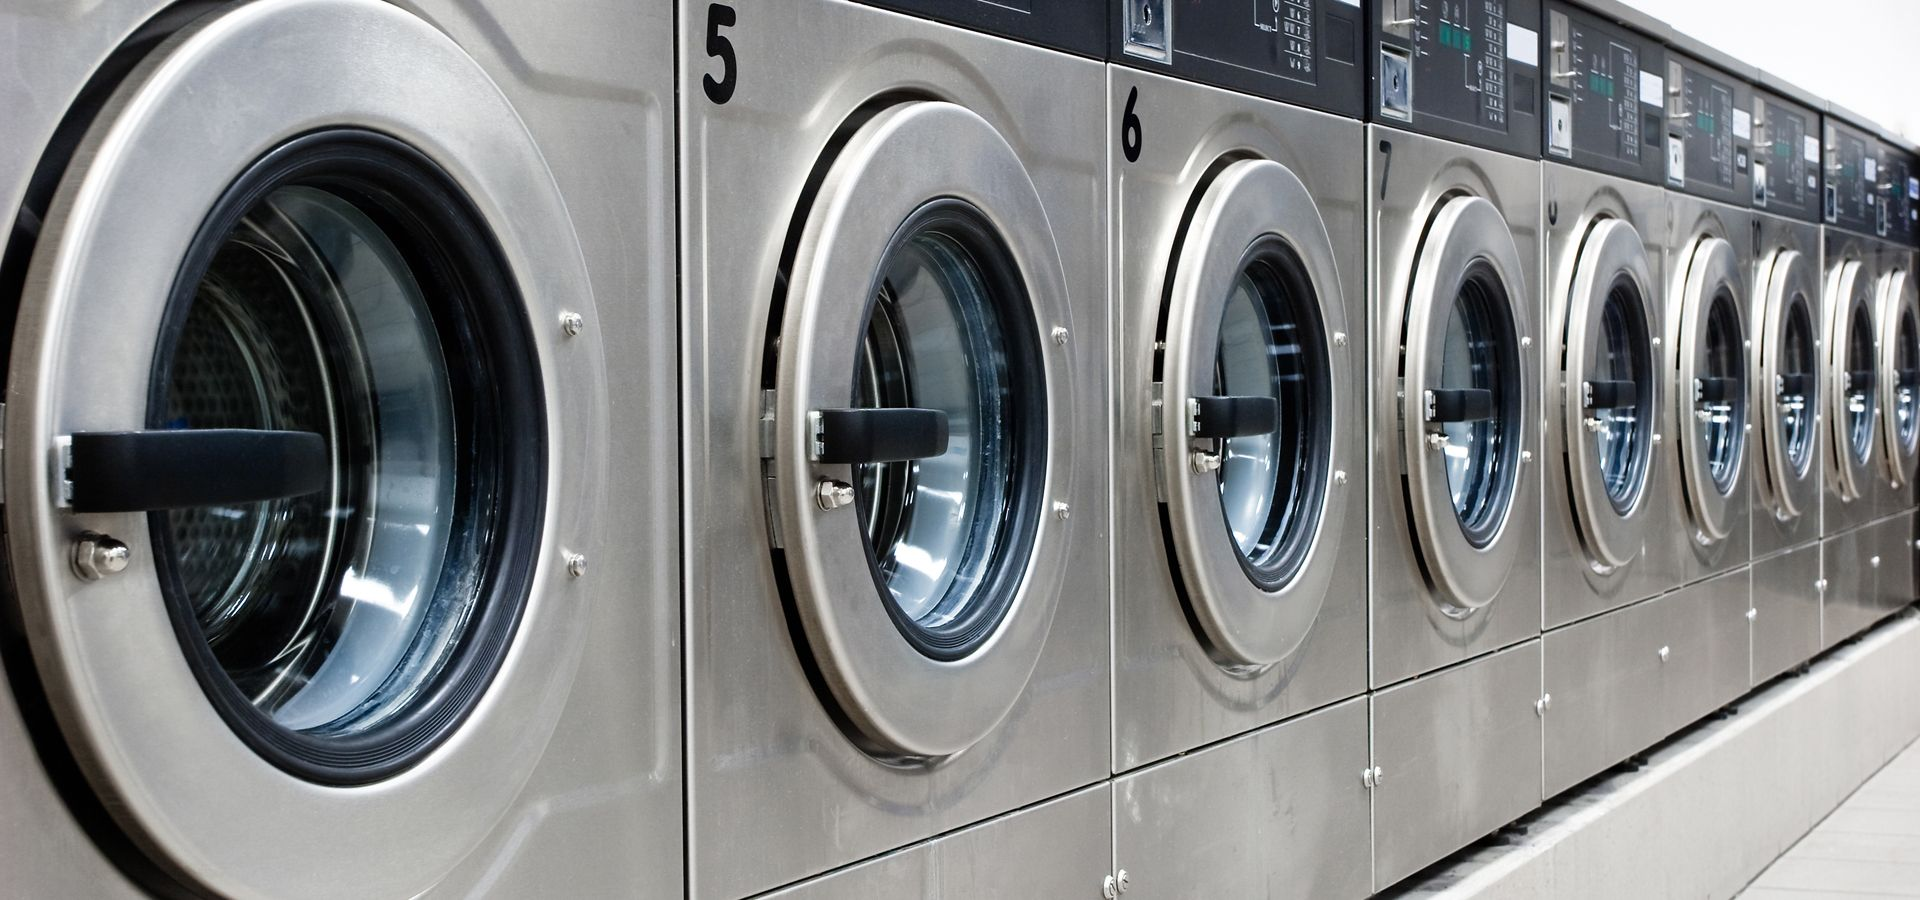 Coin Operated Laundry For Sale Services Coin Laundry Business